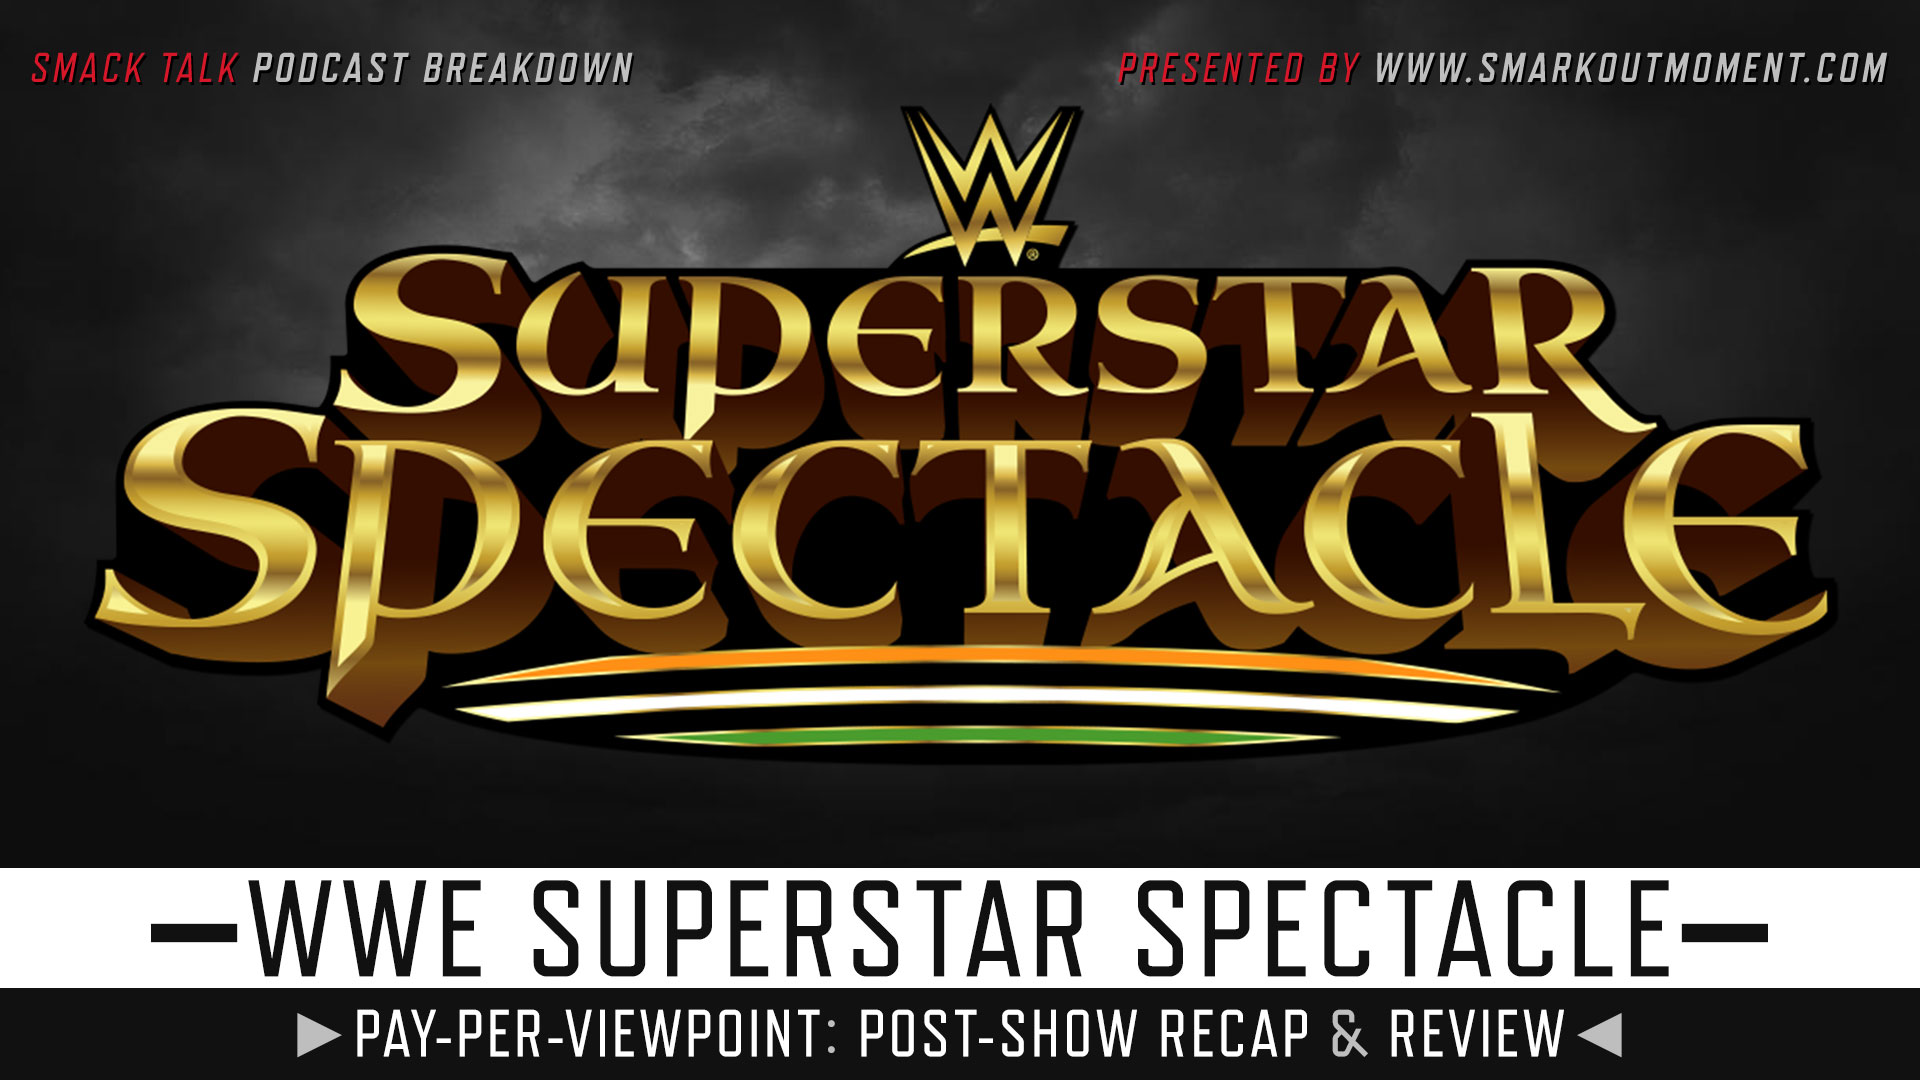 WWE Superstar Spectacle 2021 Recap and Review Podcast